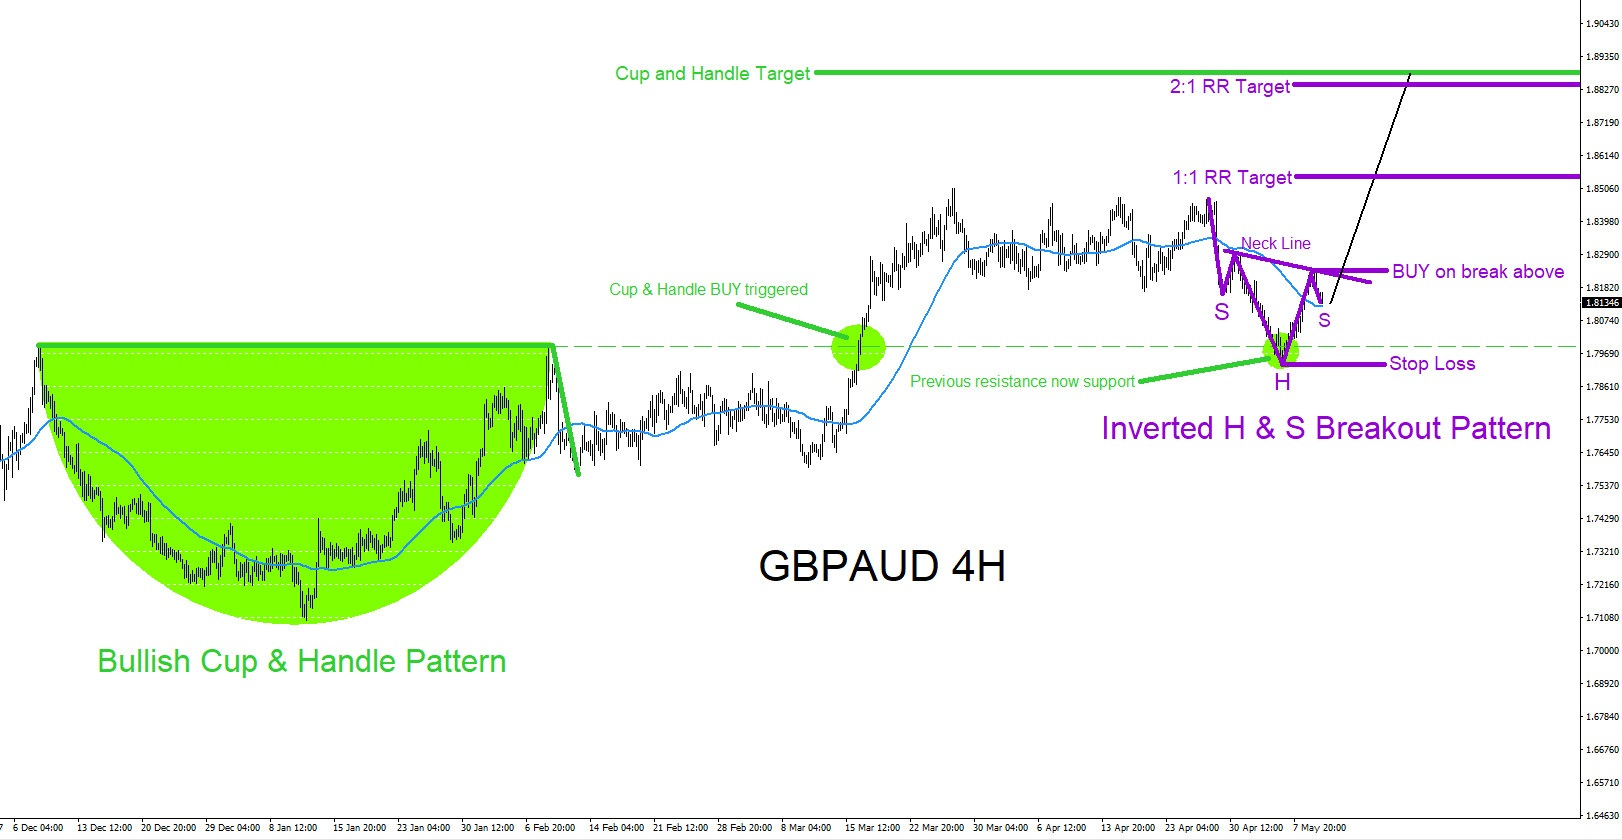 GBPAUD : Eyeing the Possible Breakout Higher